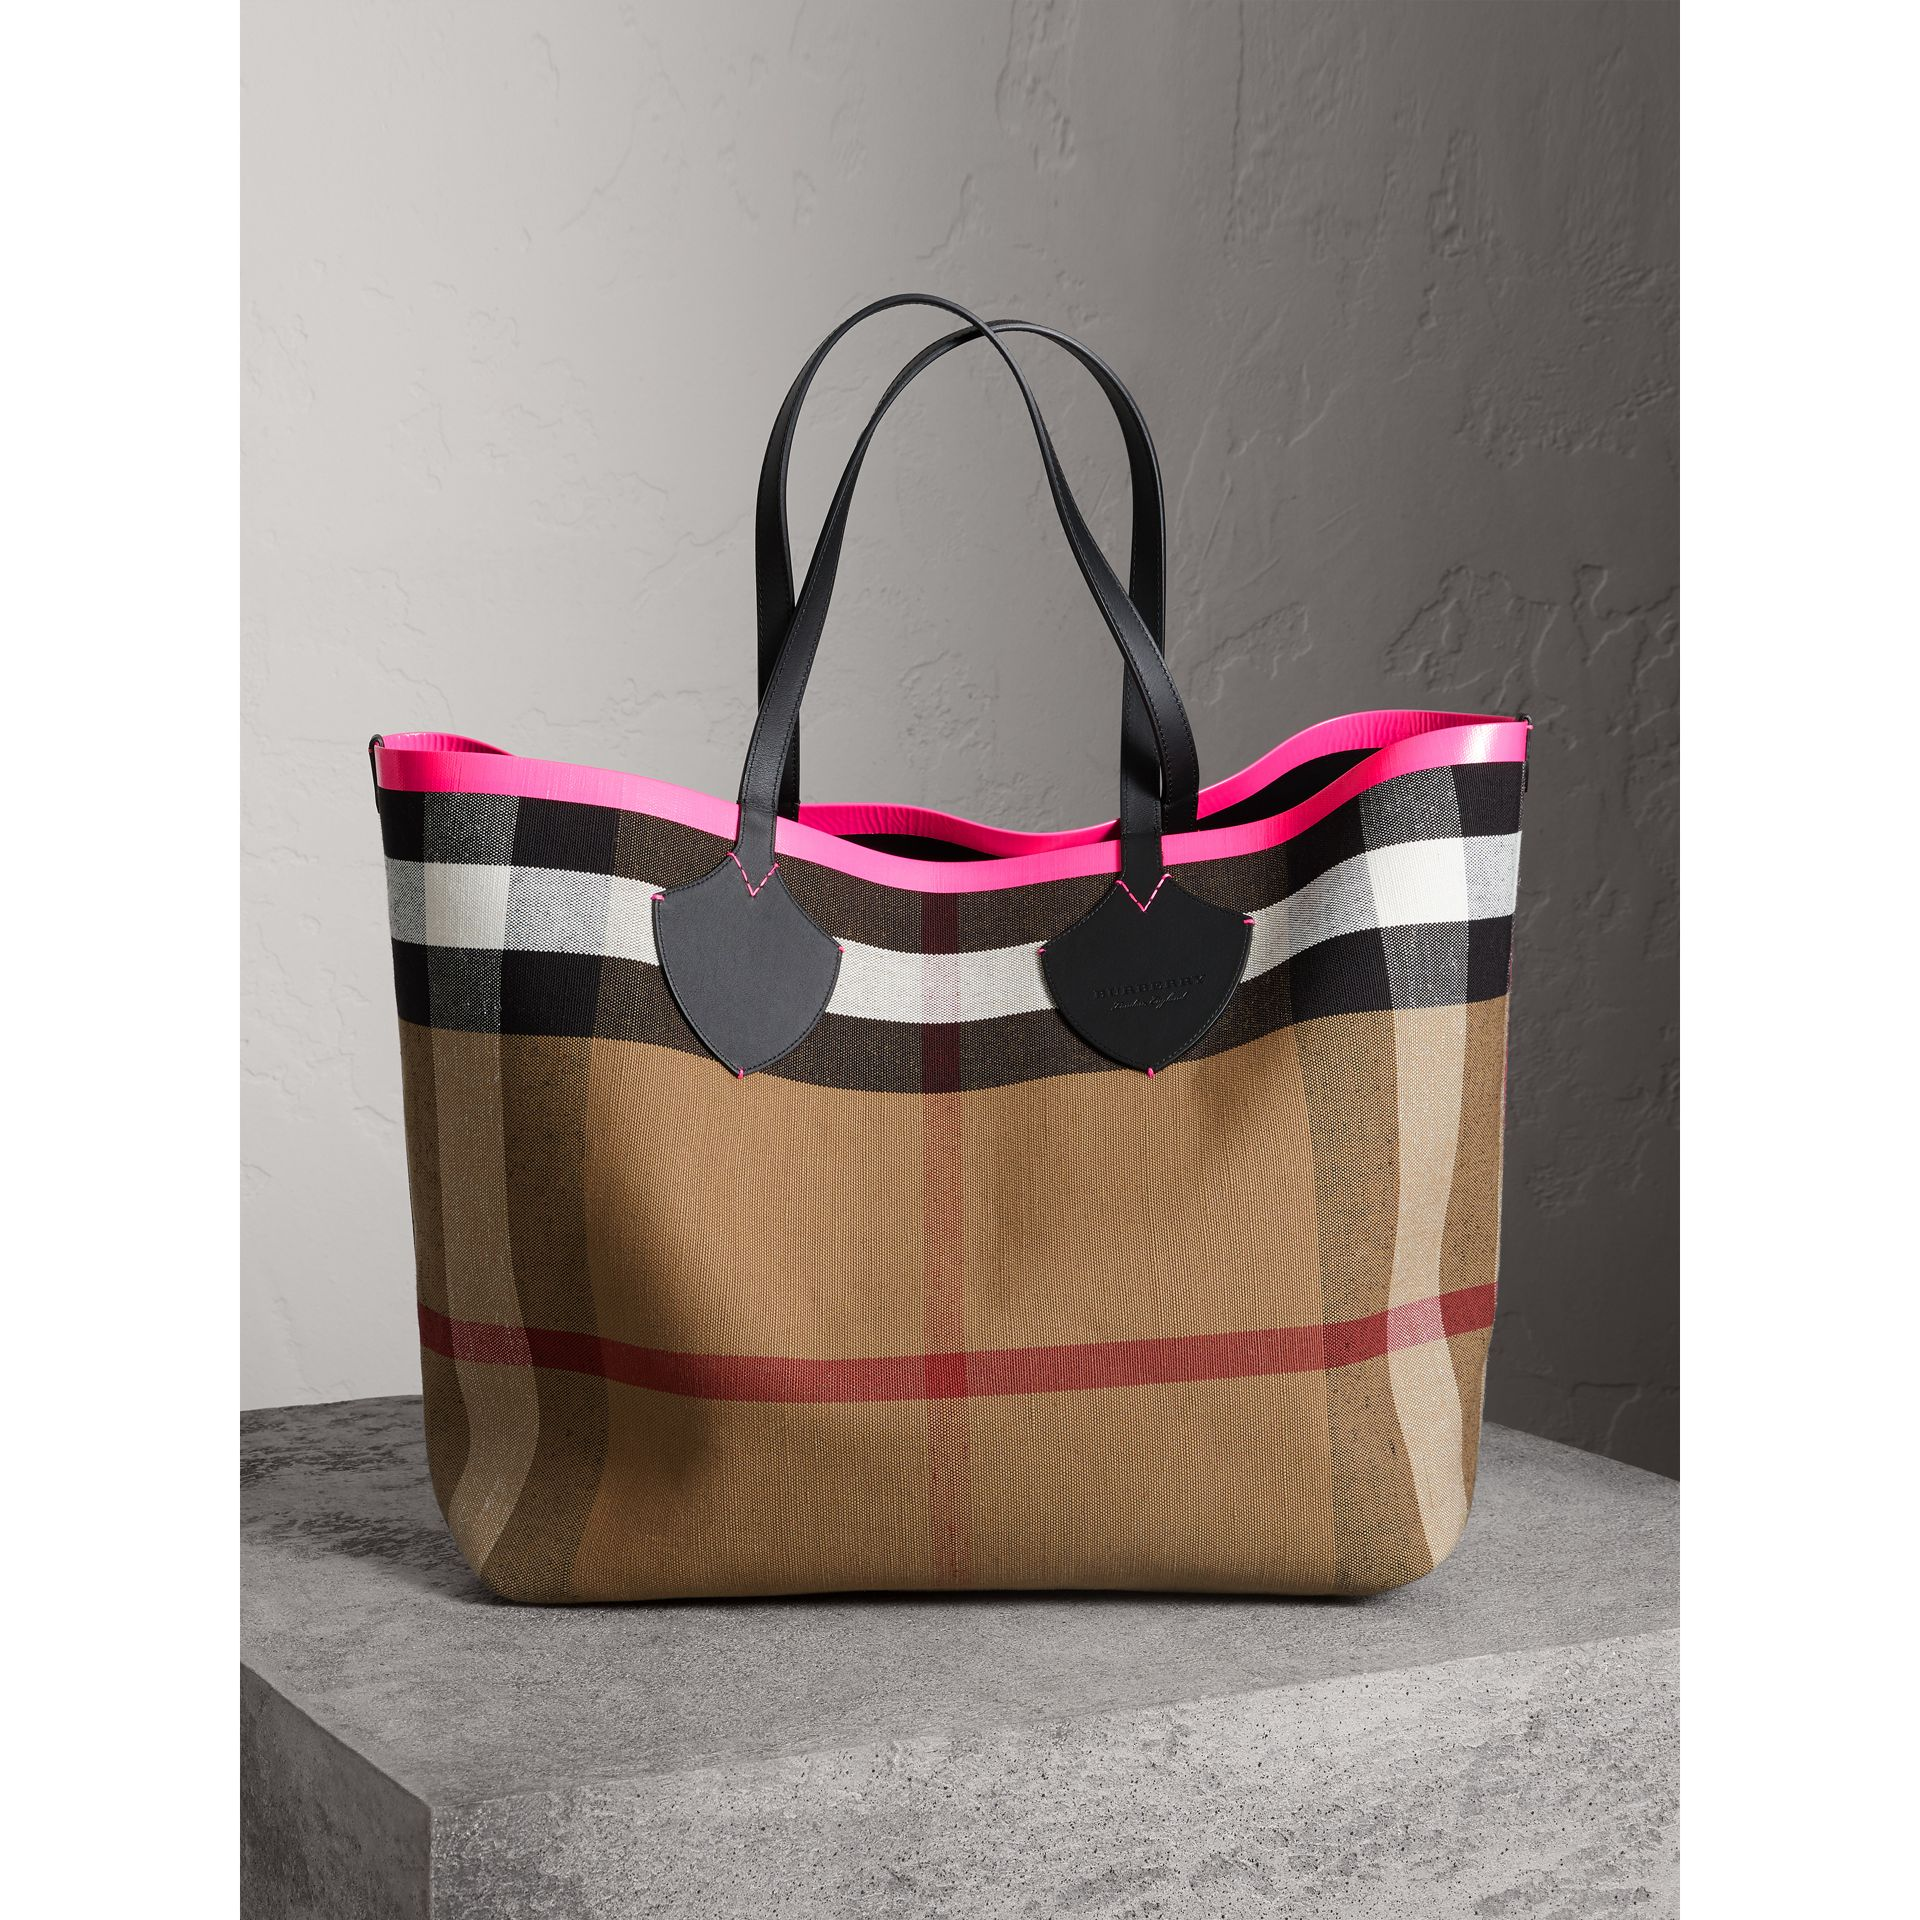 Sac tote The Giant réversible en cuir et coton Canvas check (Noir/rose Néon) | Burberry - photo de la galerie 0